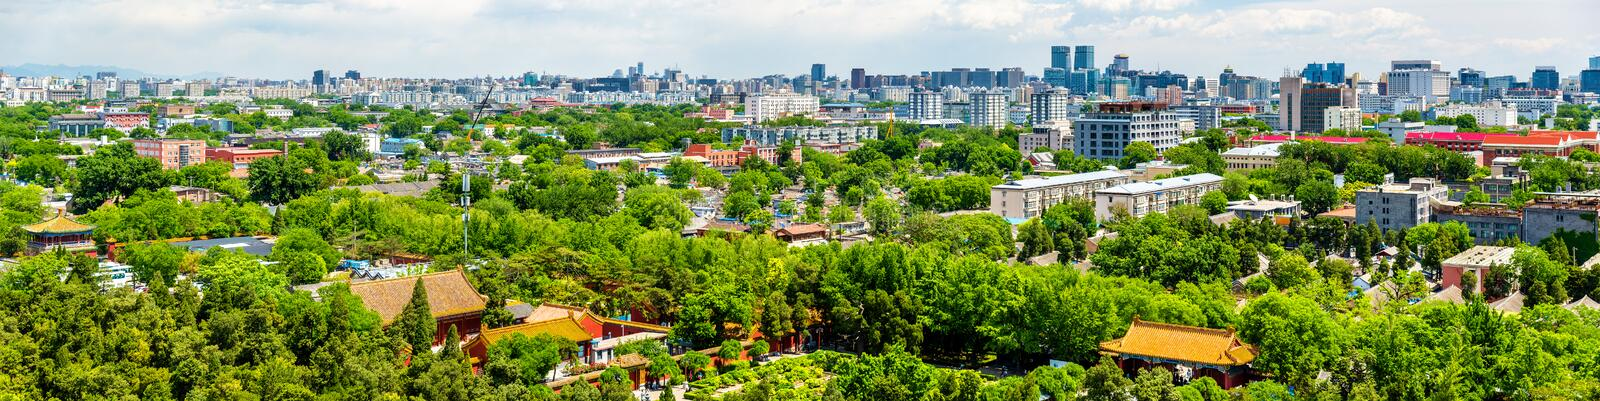 City view of Beijing from Jingshan park. China stock image